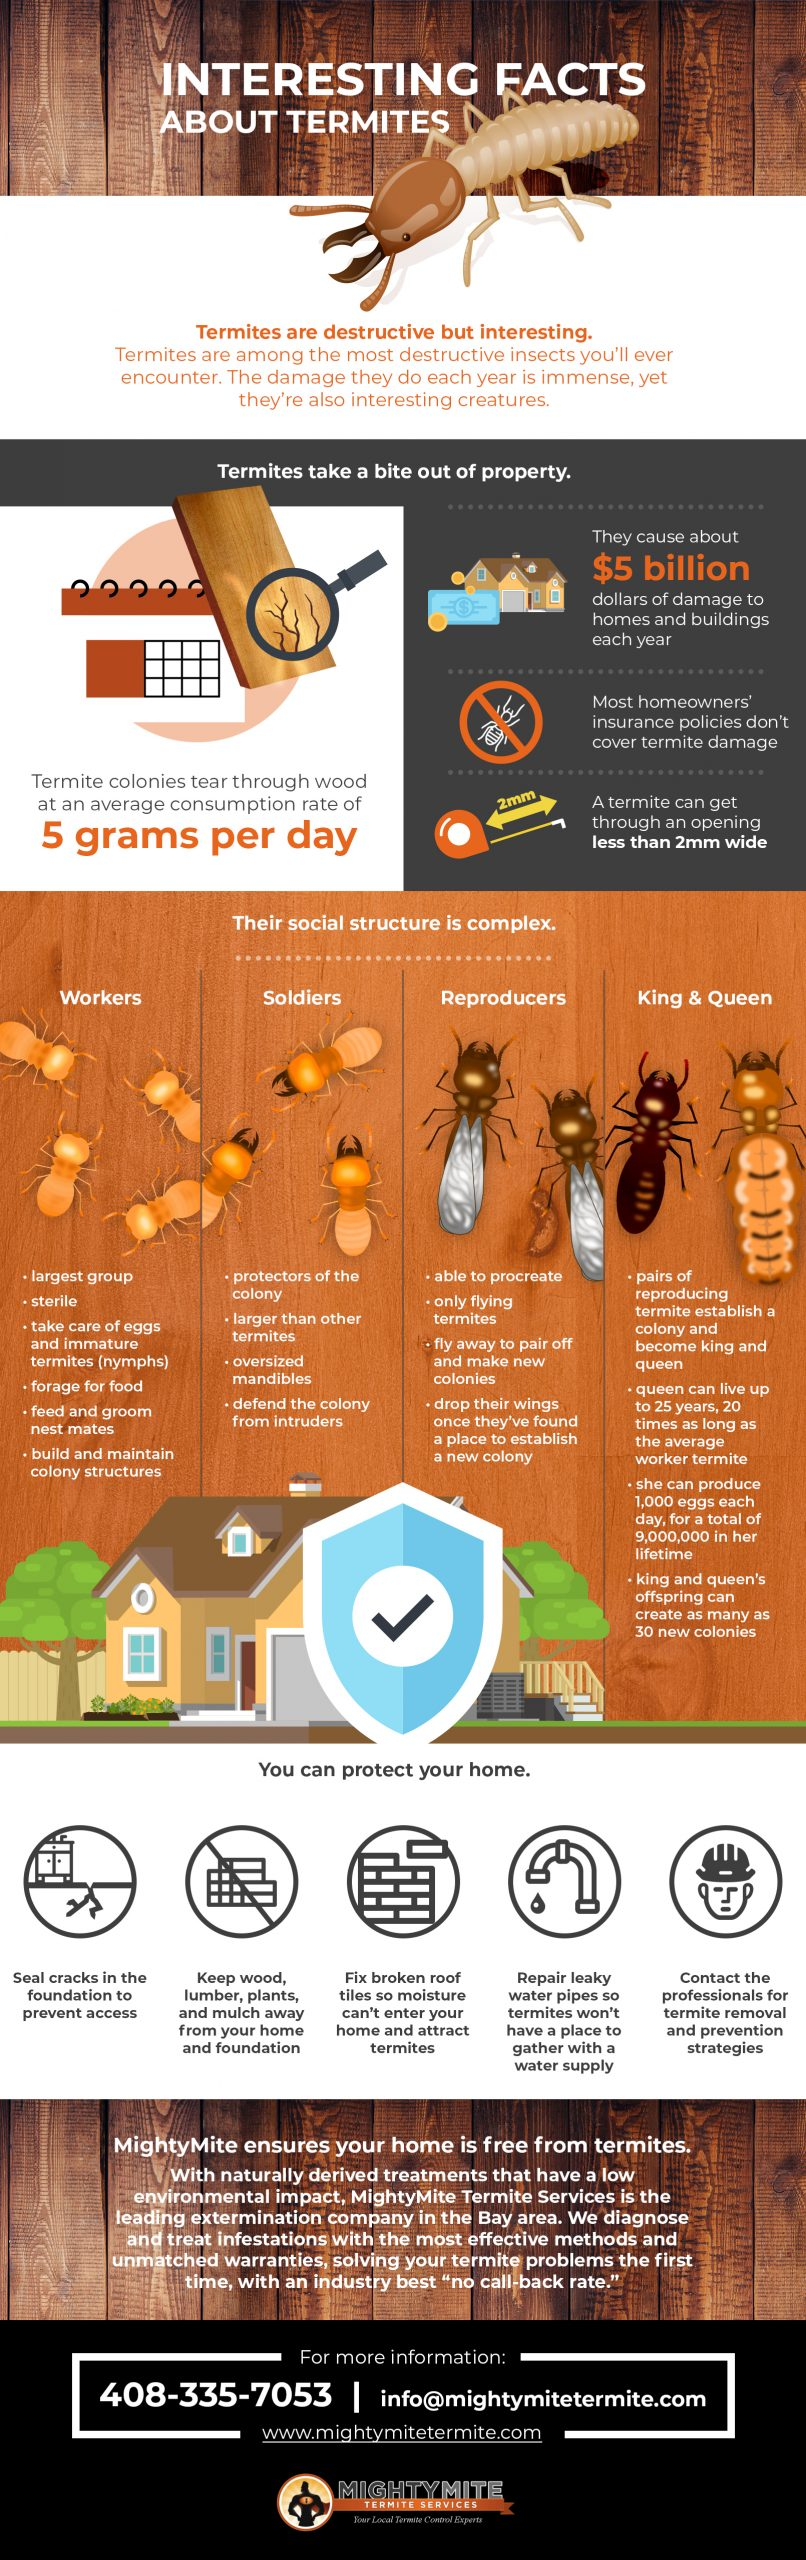 MightyMite Termite facts infographic